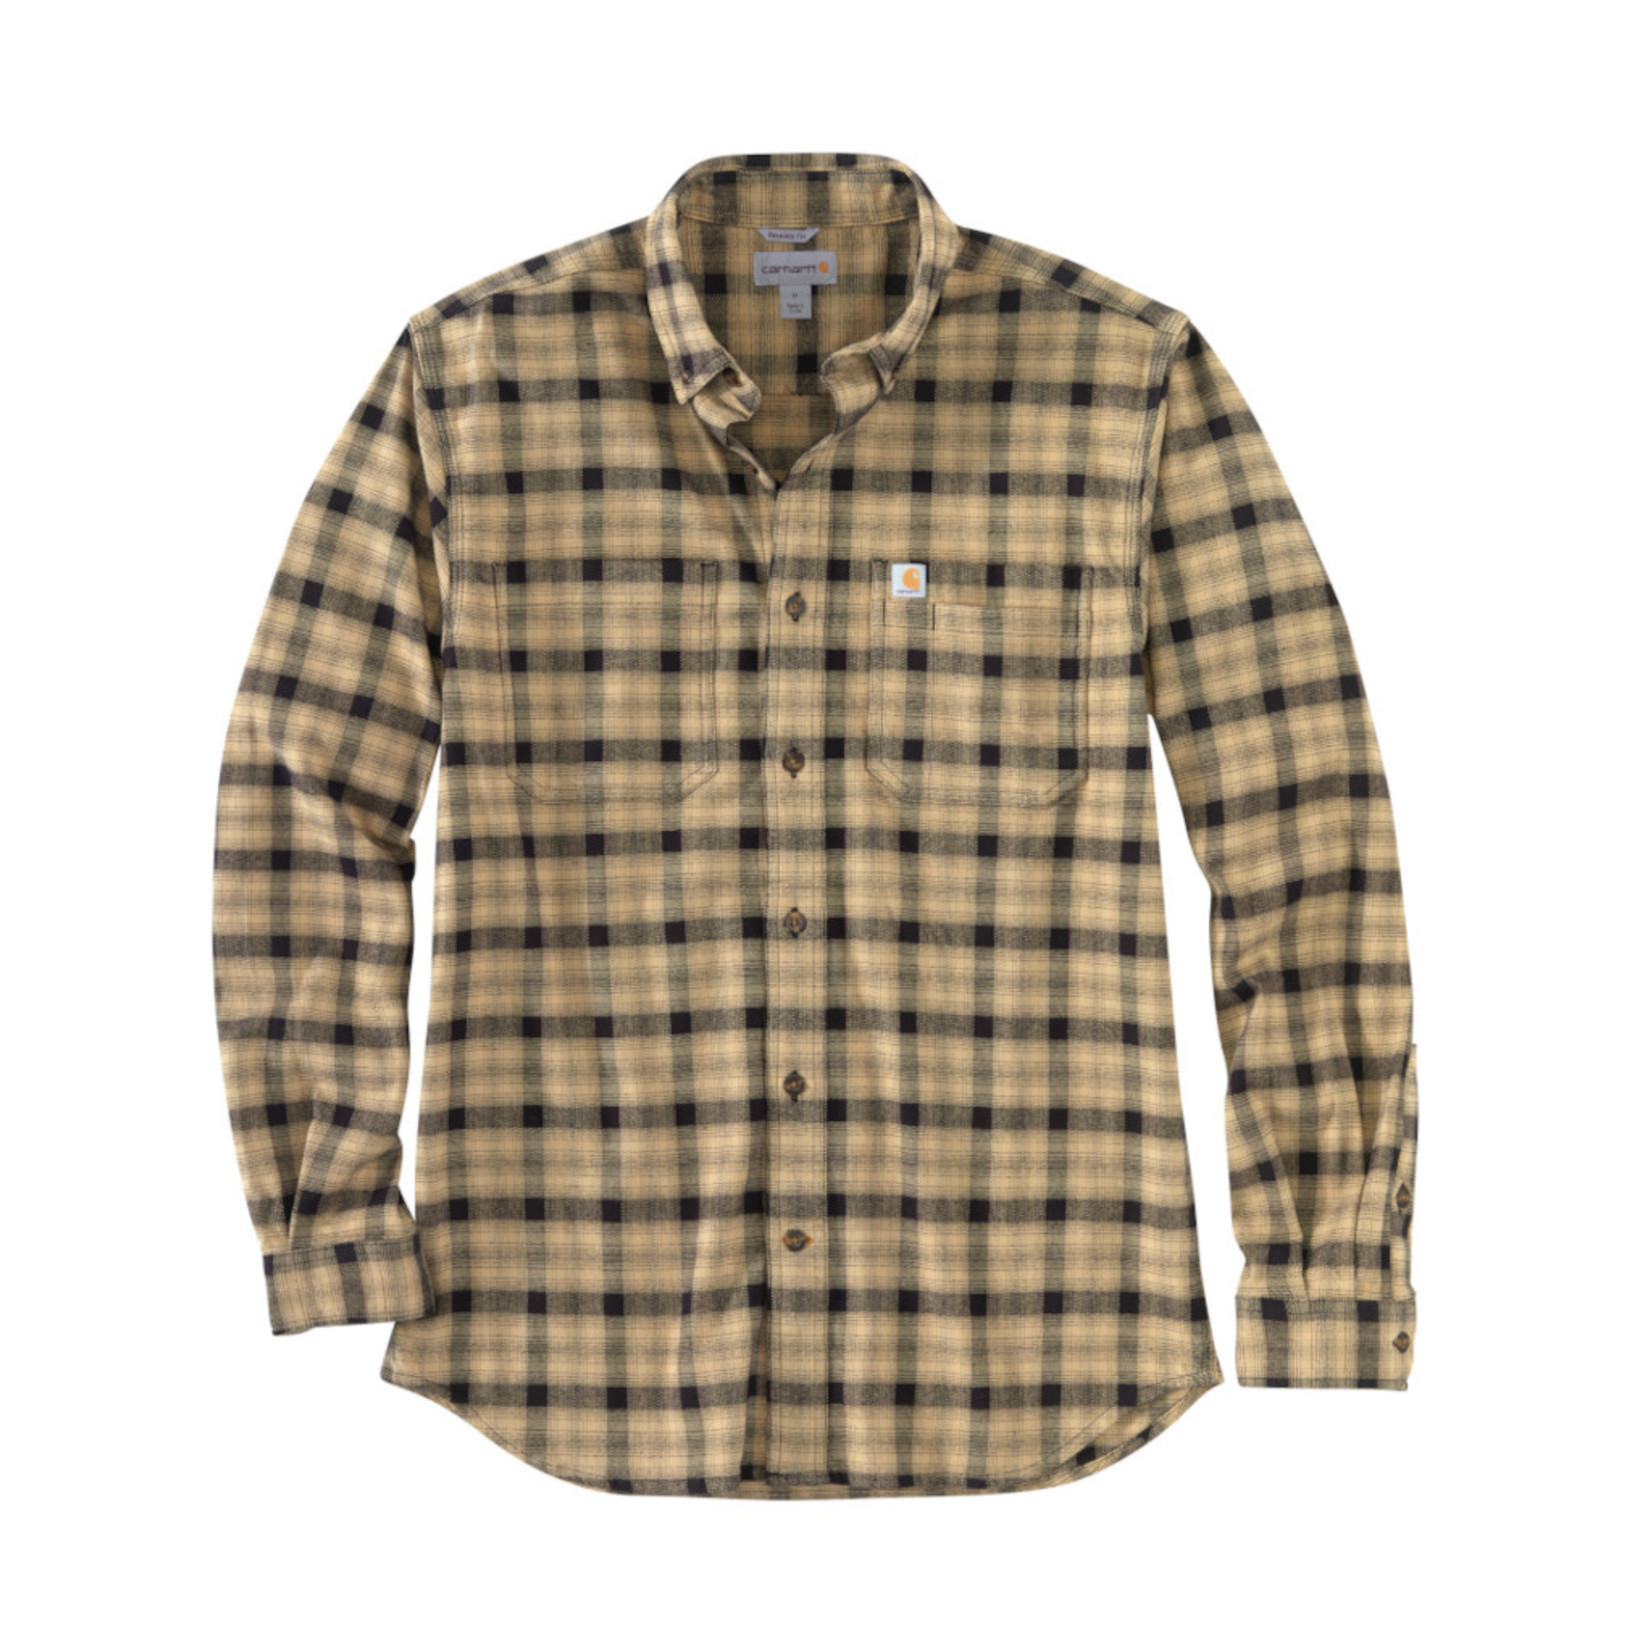 Carhartt Carhartt Rugged Flex Relaxed Fit Flannel Shirt 104448